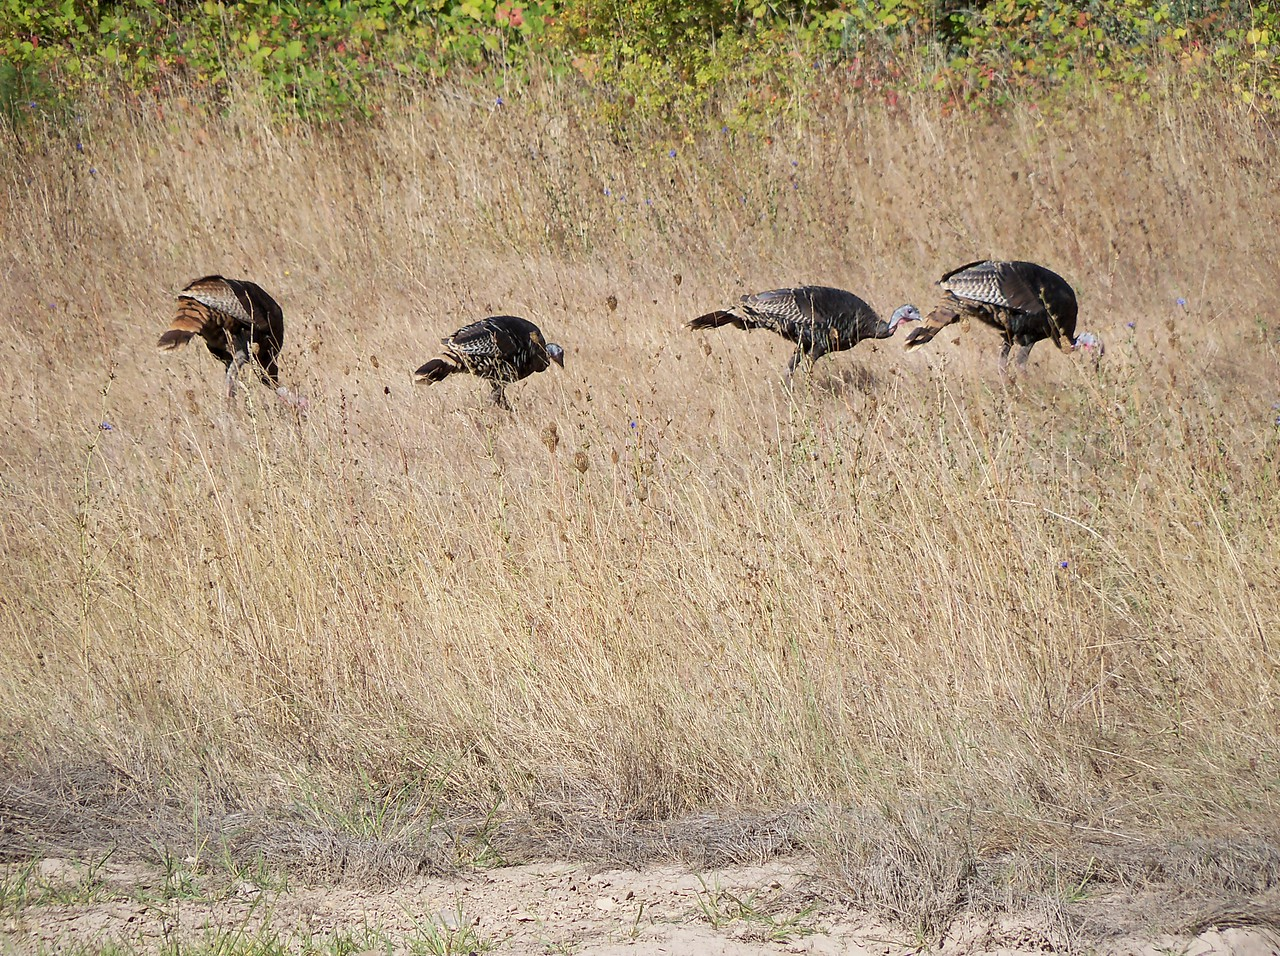 We saw lots of Wild Turkeys.